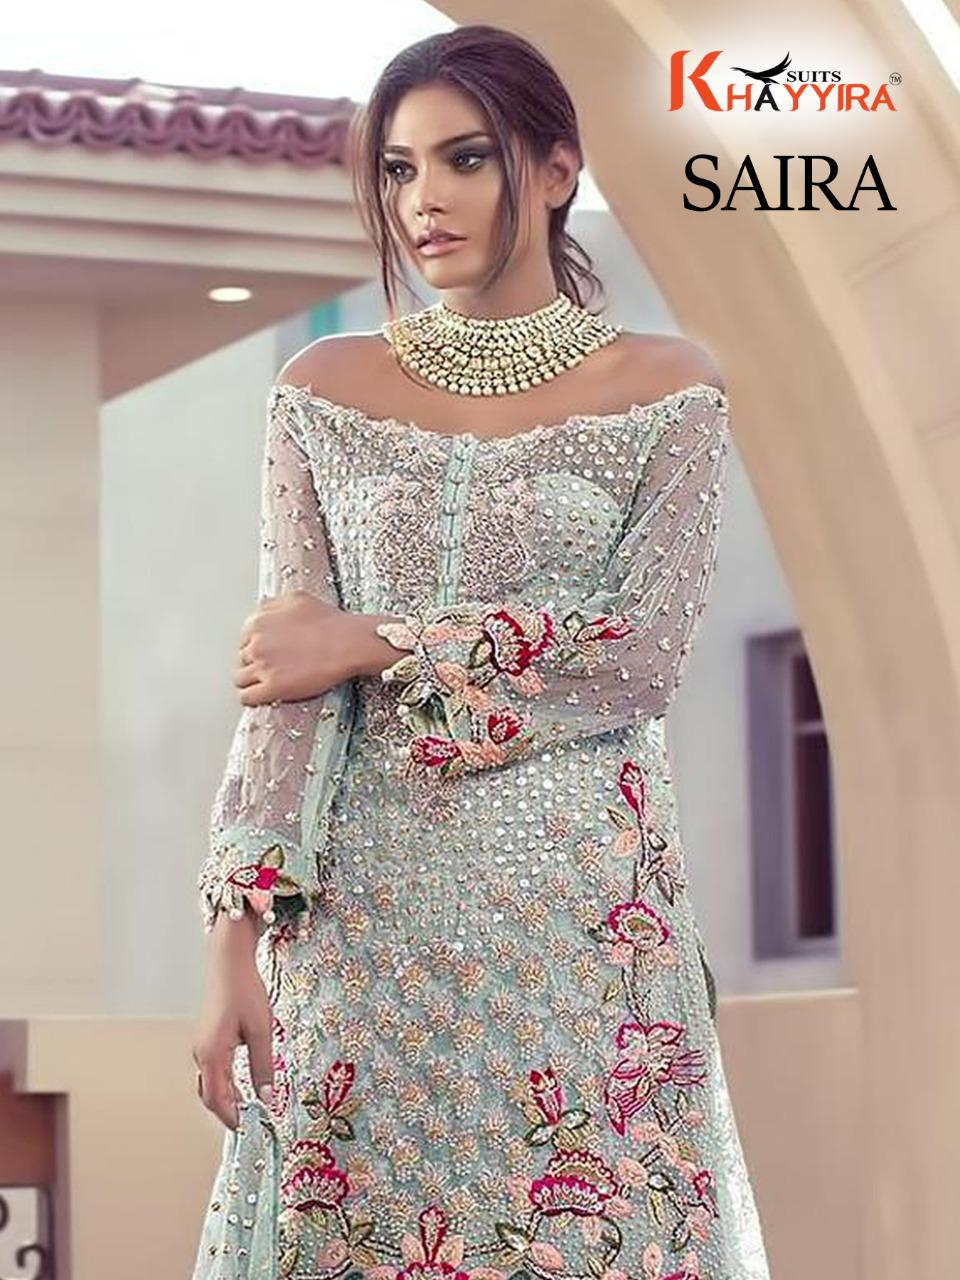 Khayyira Saira D No 1090 Salwar Suit Wholesale Catalog 4 Pcs 5 - Khayyira Saira D No 1090 Salwar Suit Wholesale Catalog 4 Pcs